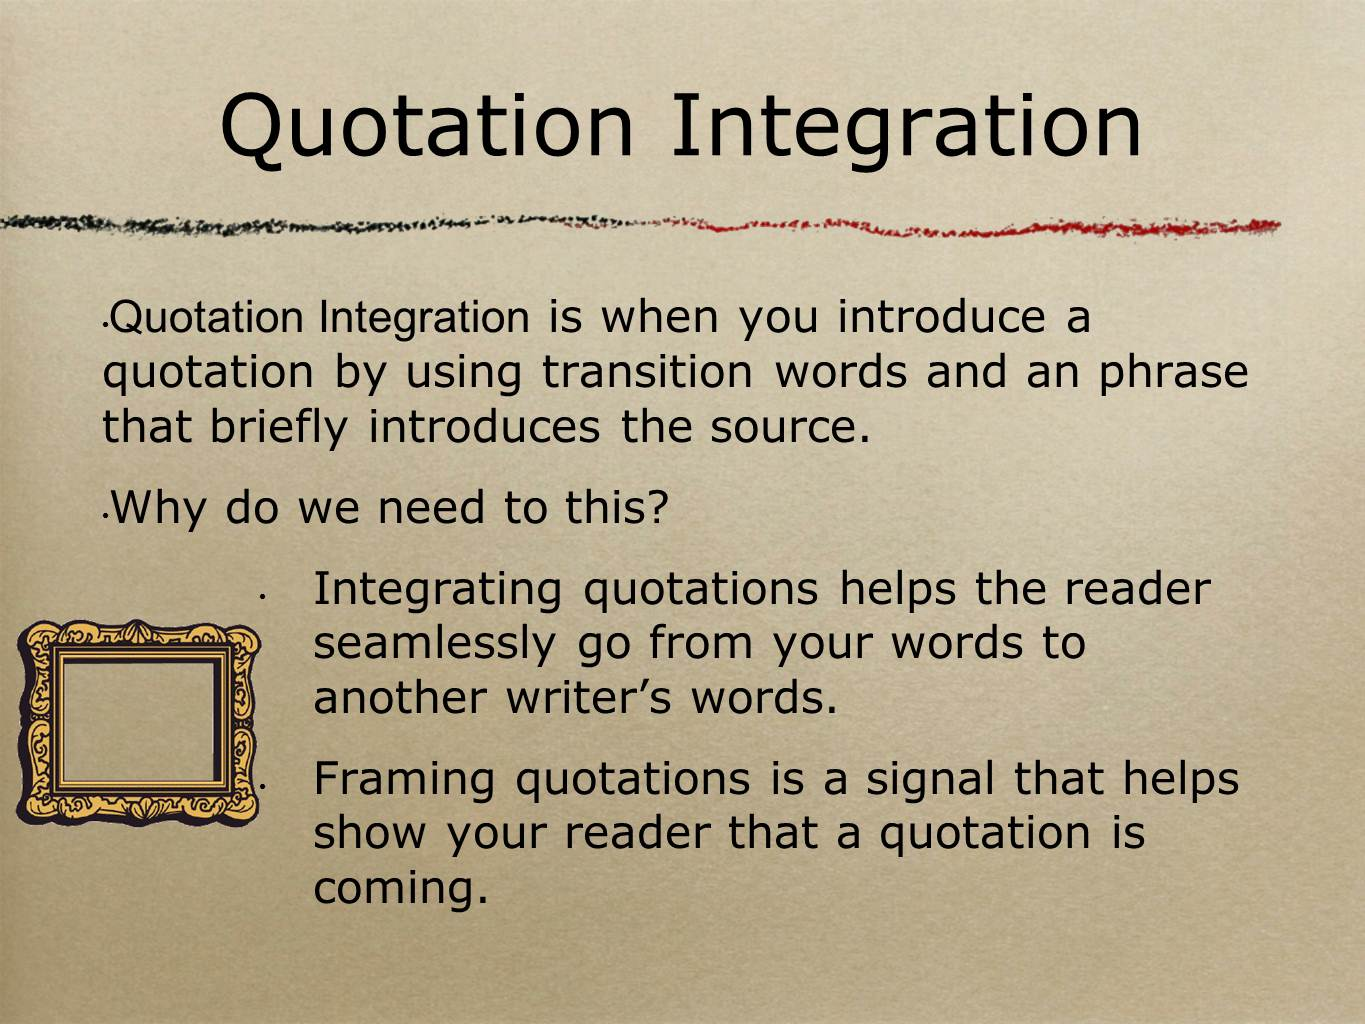 Examples of integrating quotes into an essay